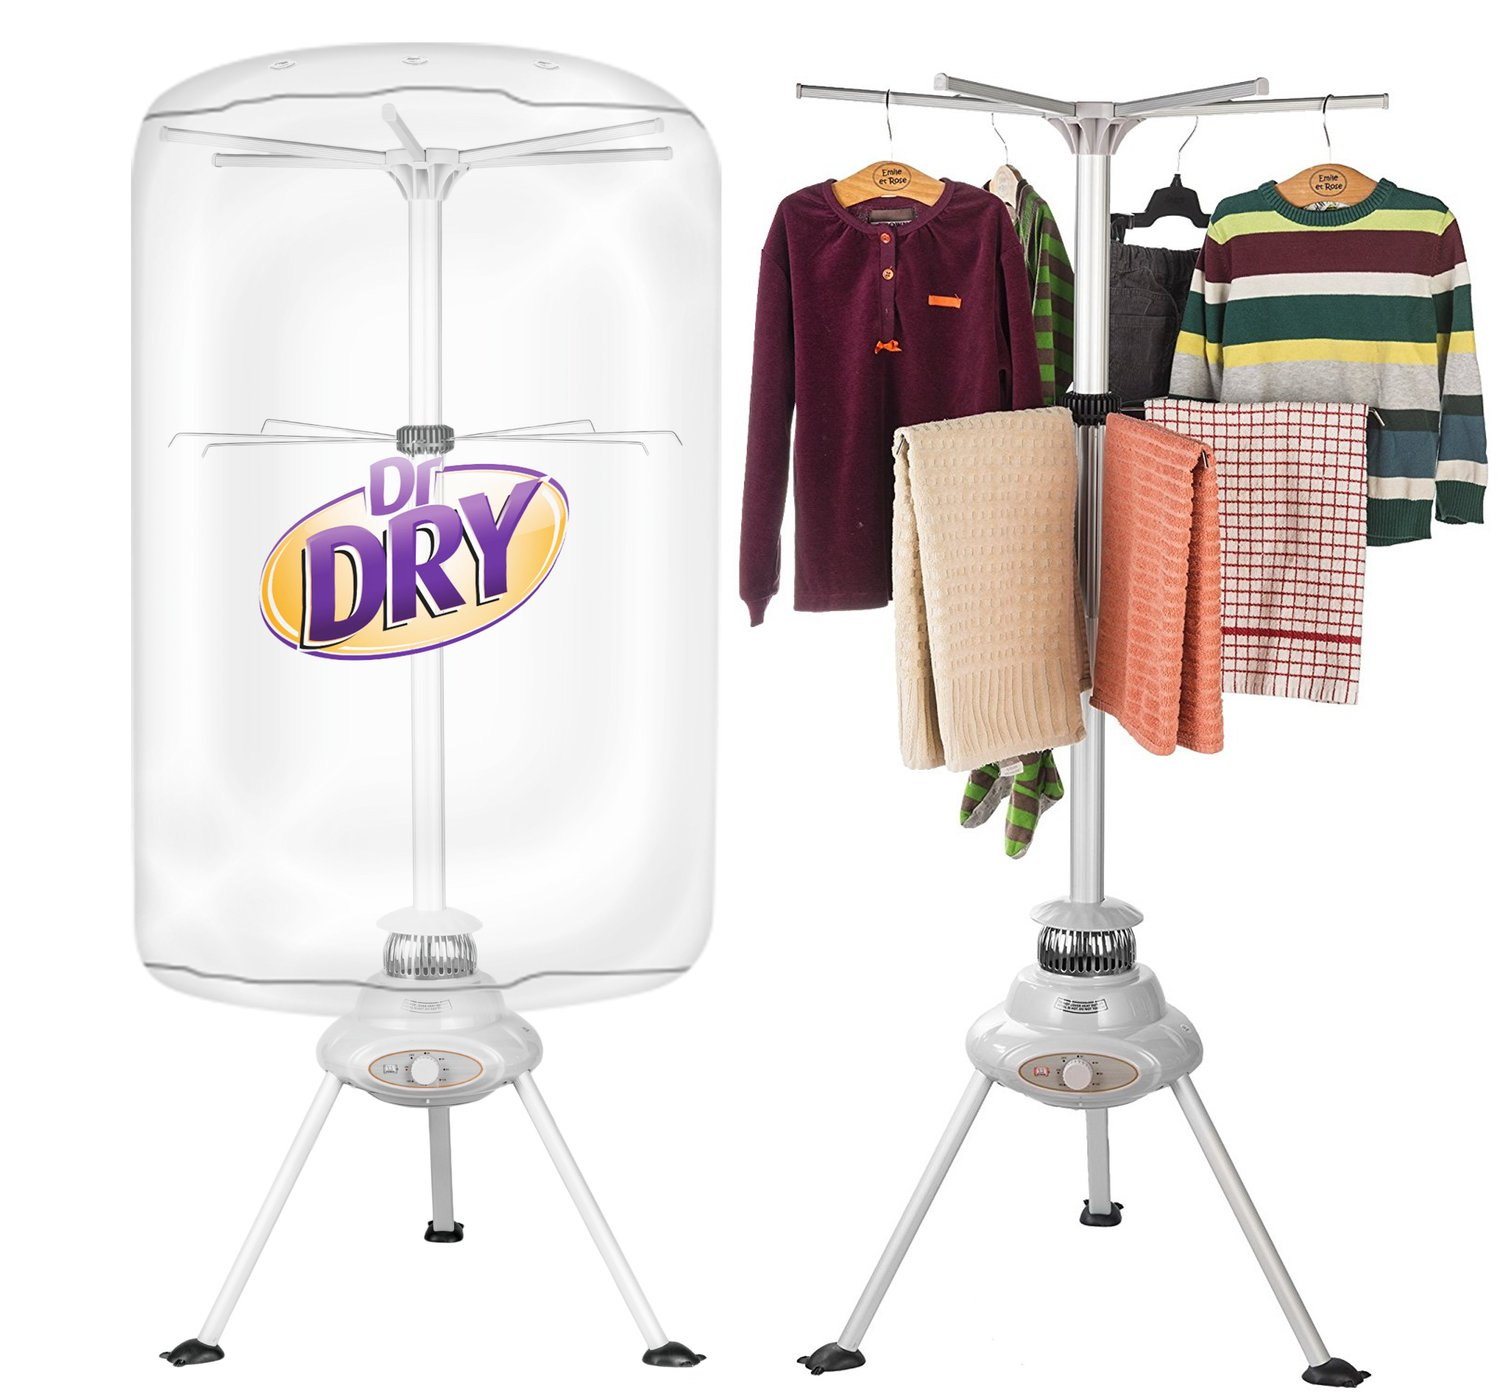 Dr. Dry Portable Clothing Dryer 1000W Heater DD-522